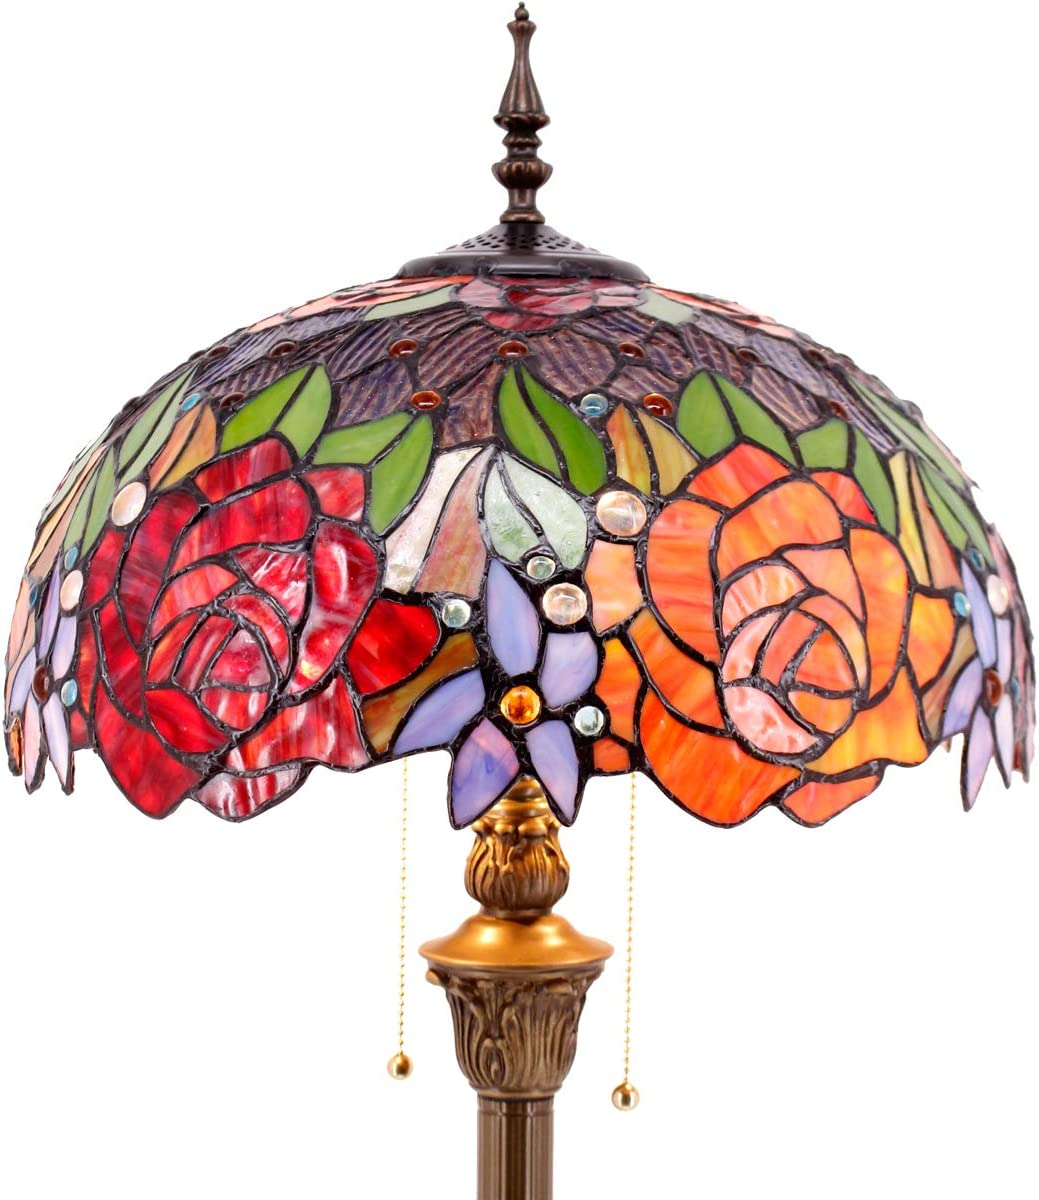 Tiffany Style Floor Standing Lamp 64 Inch Tall Stained Glass Red Rose Design Shade 2E26 Antique Base for Bedroom Living Room Reading Lighting Table Light S001 WERFACTORY